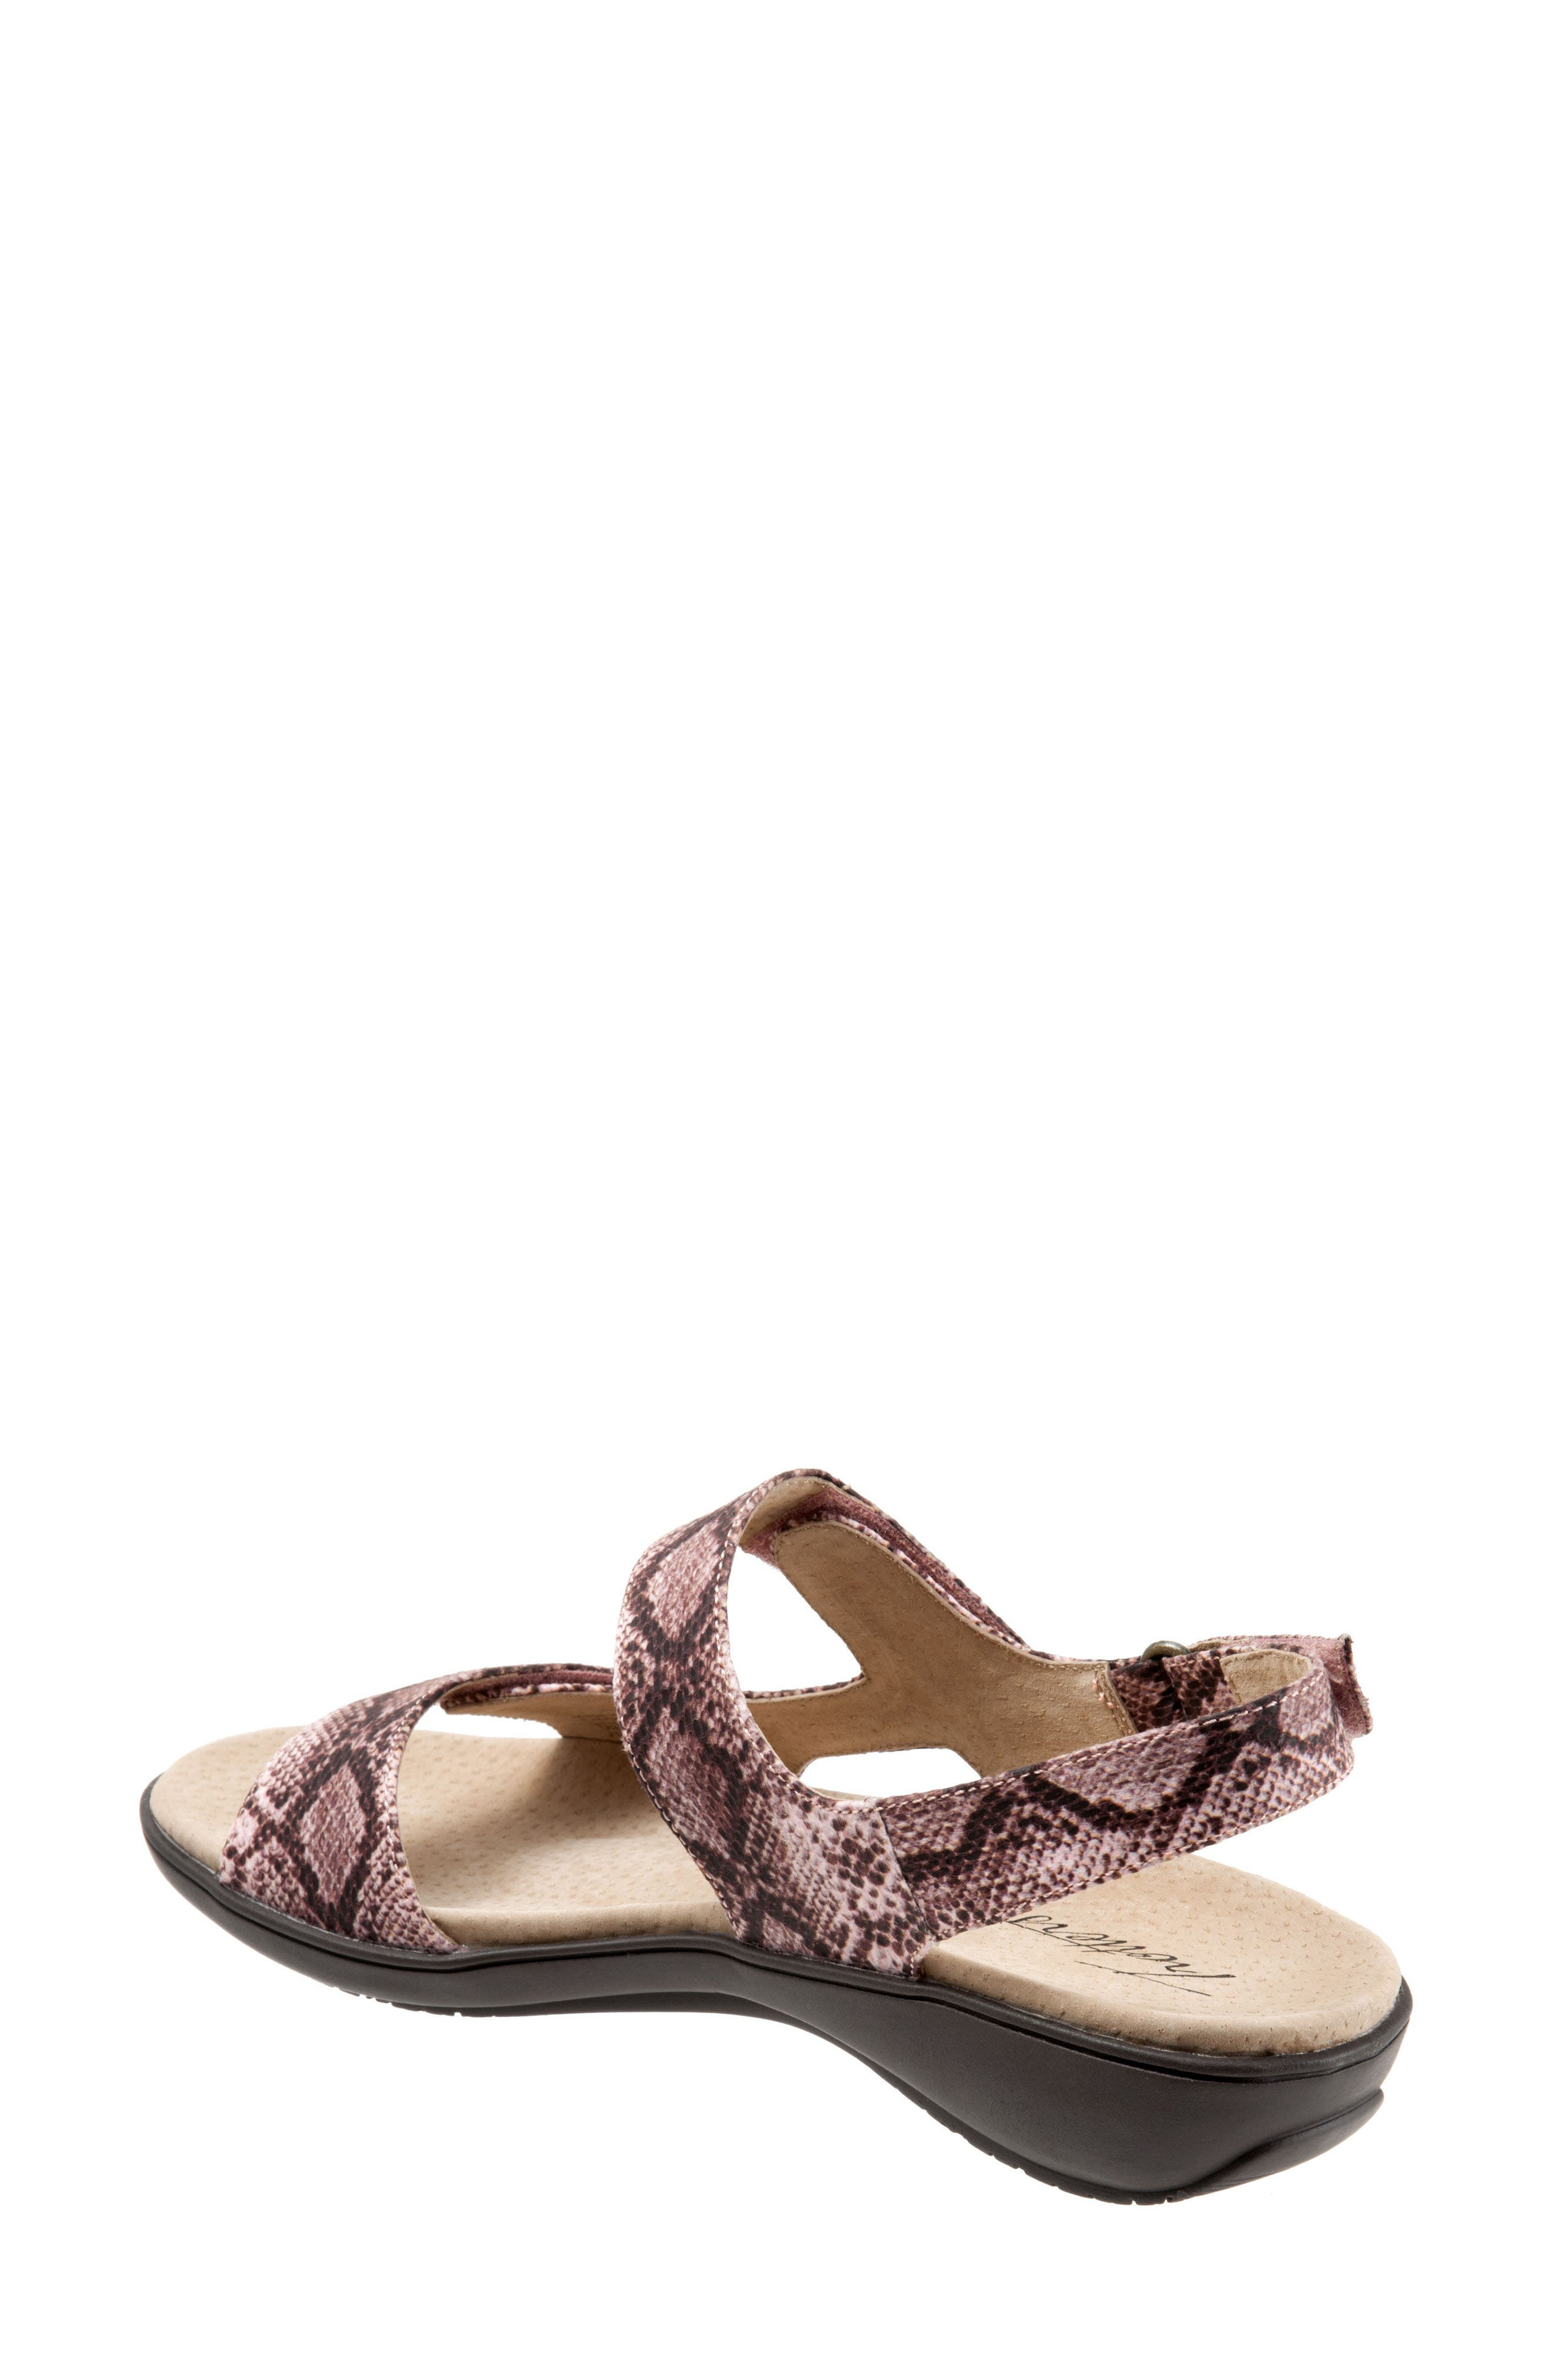 Alternate Image 2  - Trotters 'Kip' Sandal (Women)